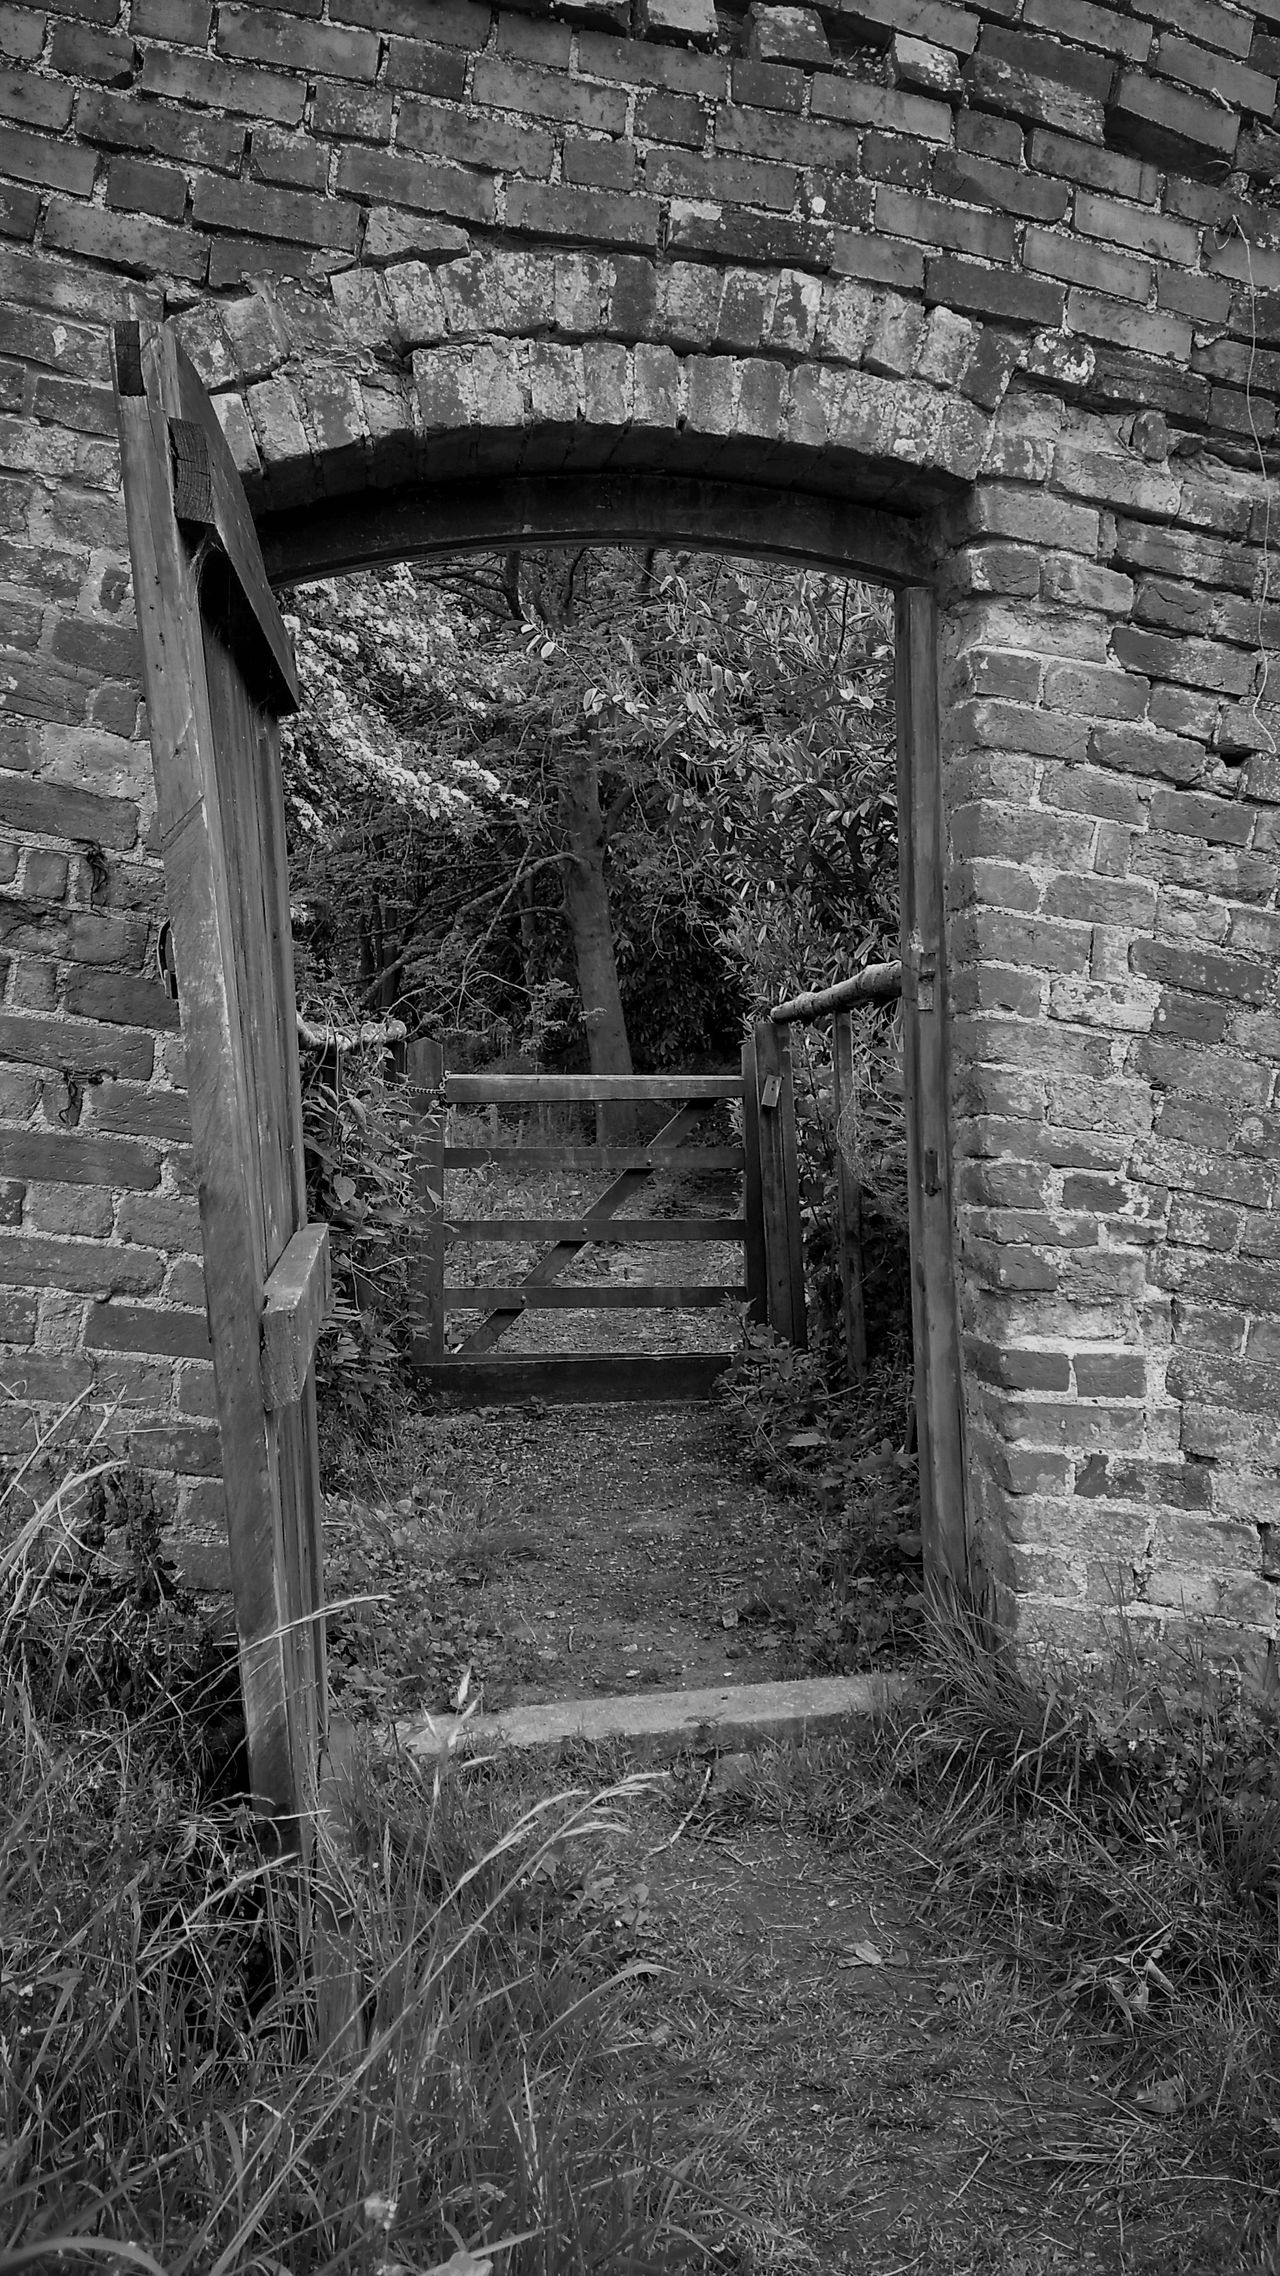 Entrance Gate Narrowpath The Way Forward Bnw_friday_eyeemchallenge Vanishing Point Weathered Diminishing Perspective Gateway Gate EyeEm Best Shots EyeEm Masterclass Eye4photography  Malephotographerofthemonth EyeEmbestshots EyeEm Gallery Brick Wall Bricks